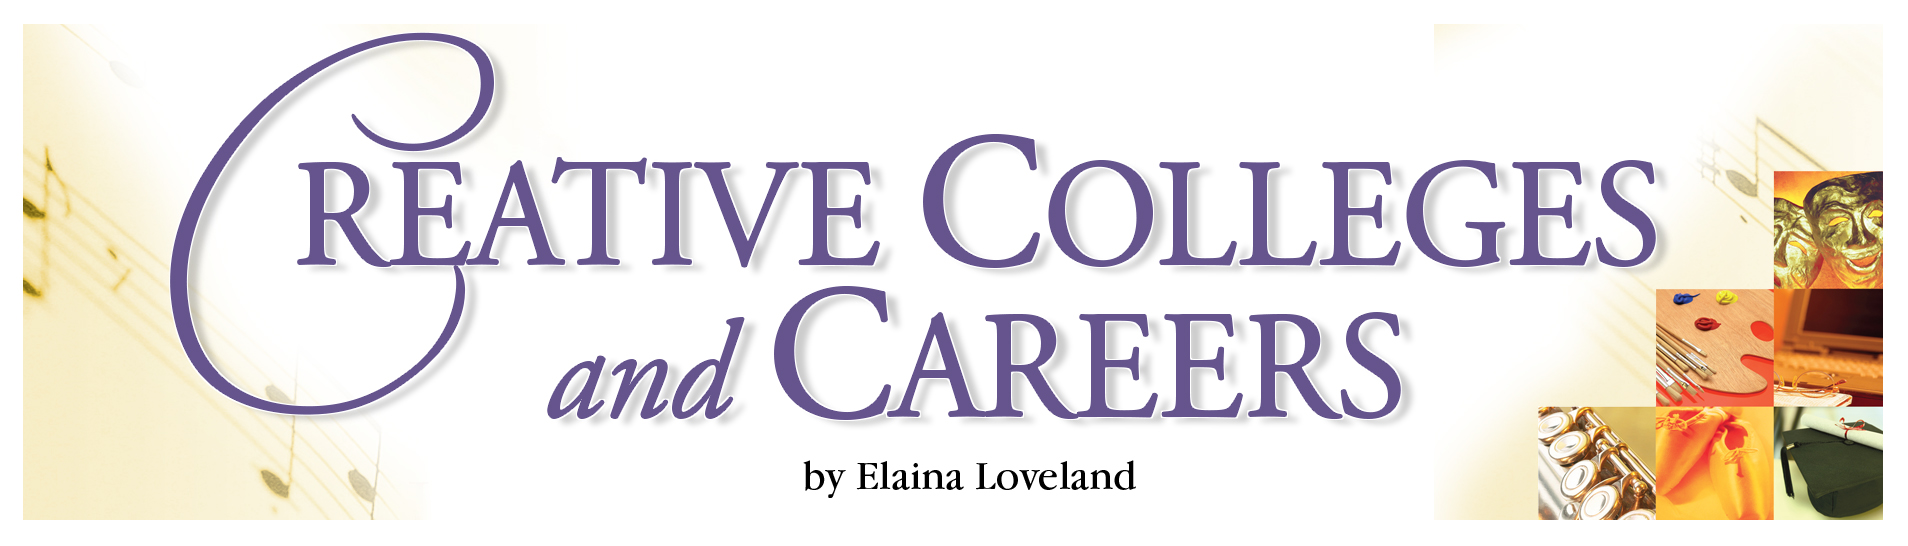 Creative Colleges and Careers